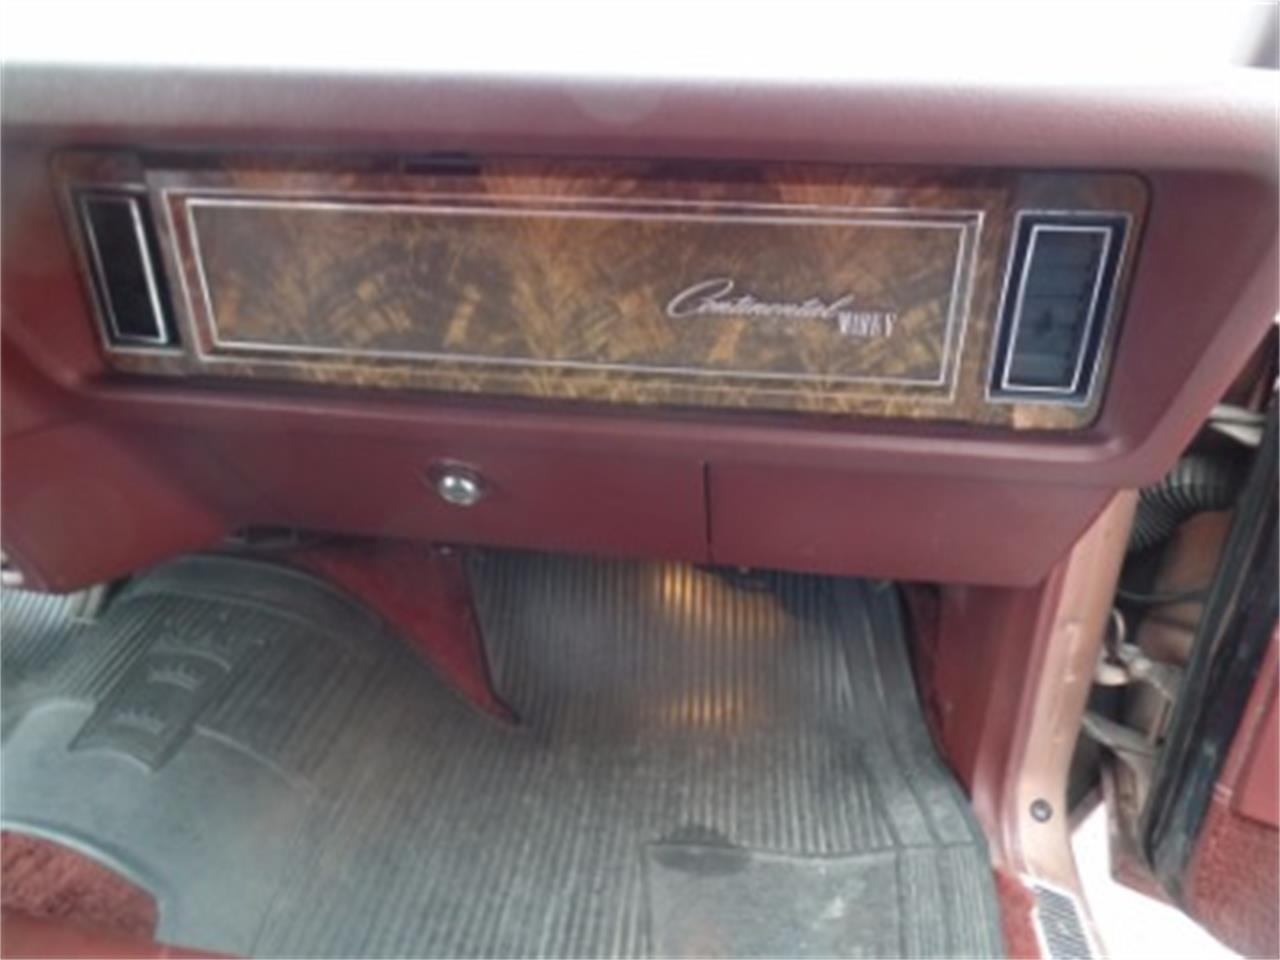 1979 Lincoln Continental for sale in Mundelein, IL – photo 33